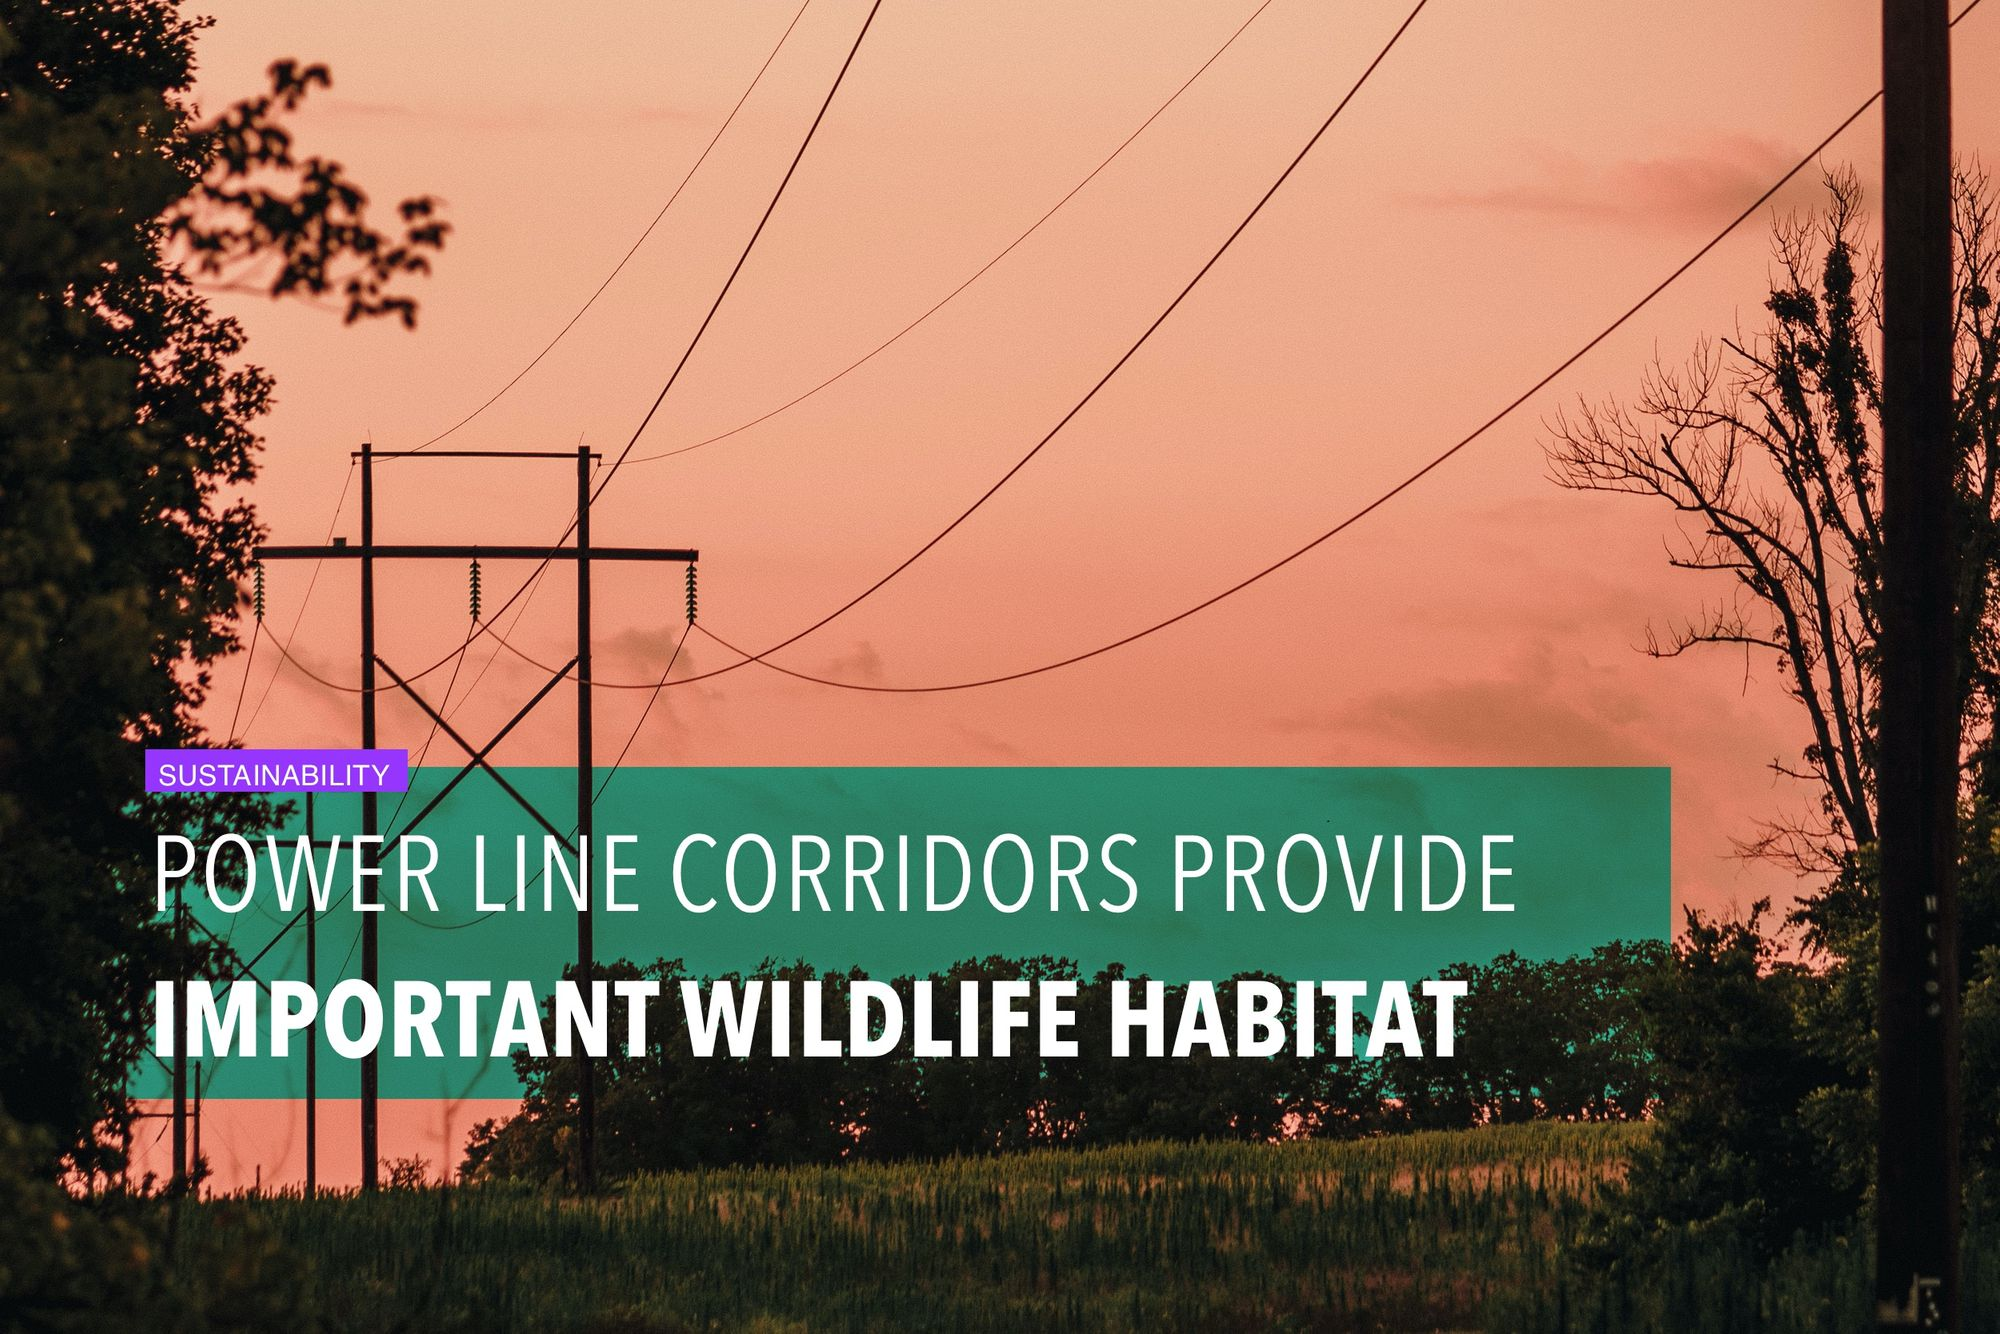 Power line corridors provide important wildlife habitat